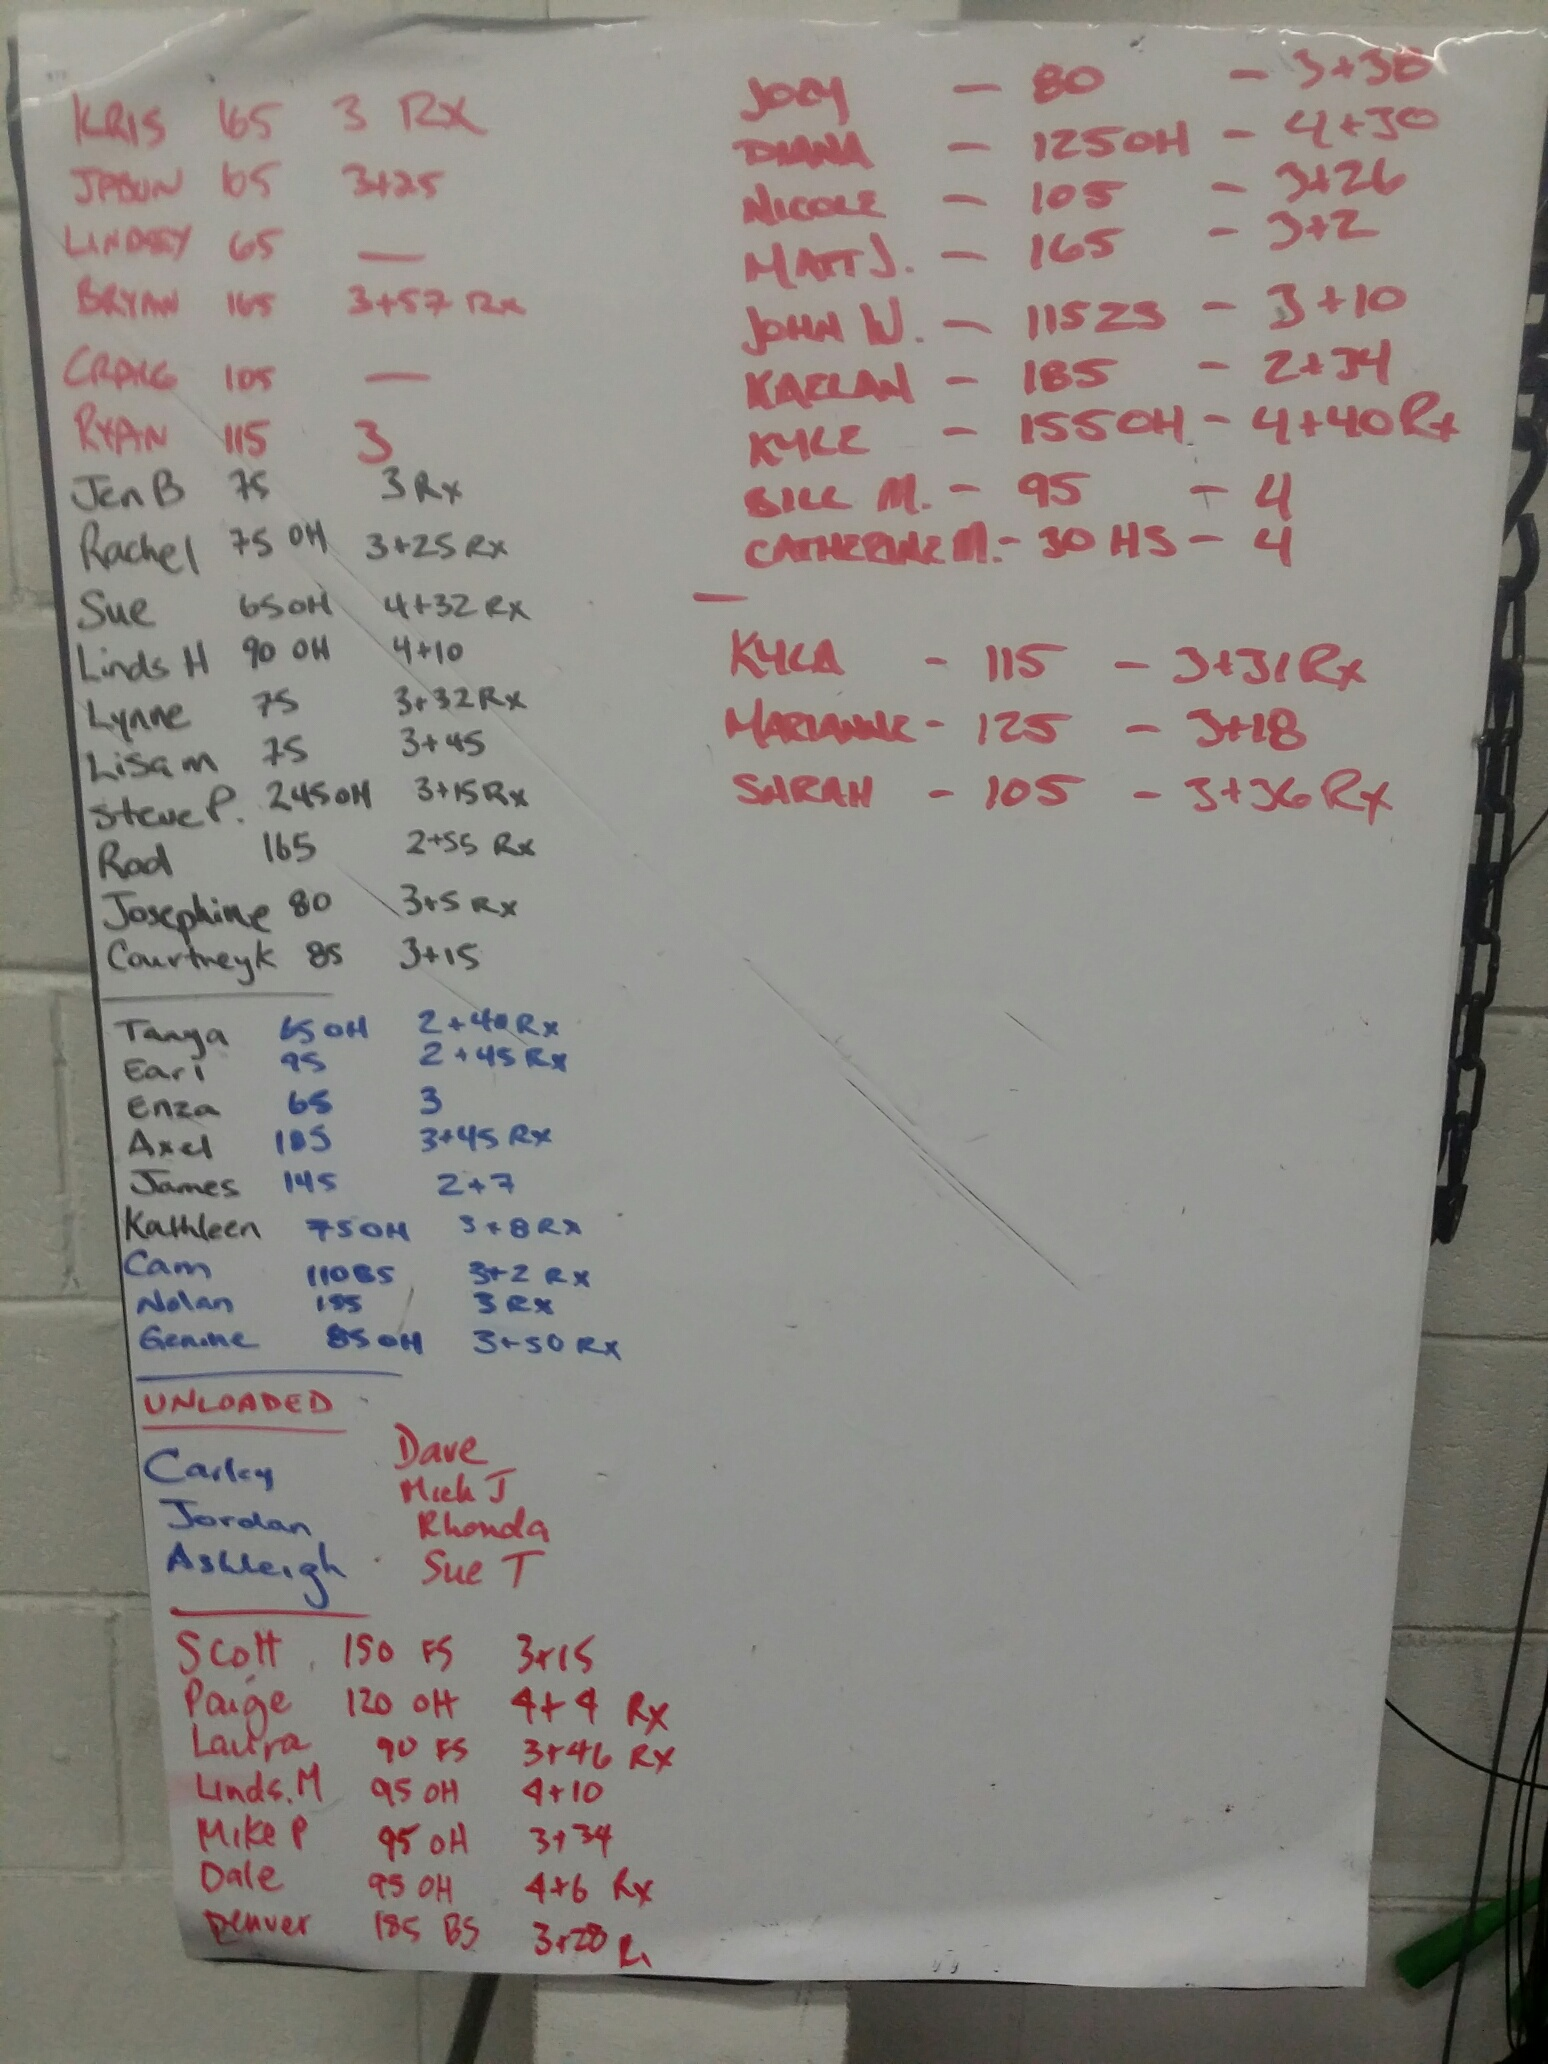 Kyle and Sue crushing the wod with 4 plus rounds Rx today!